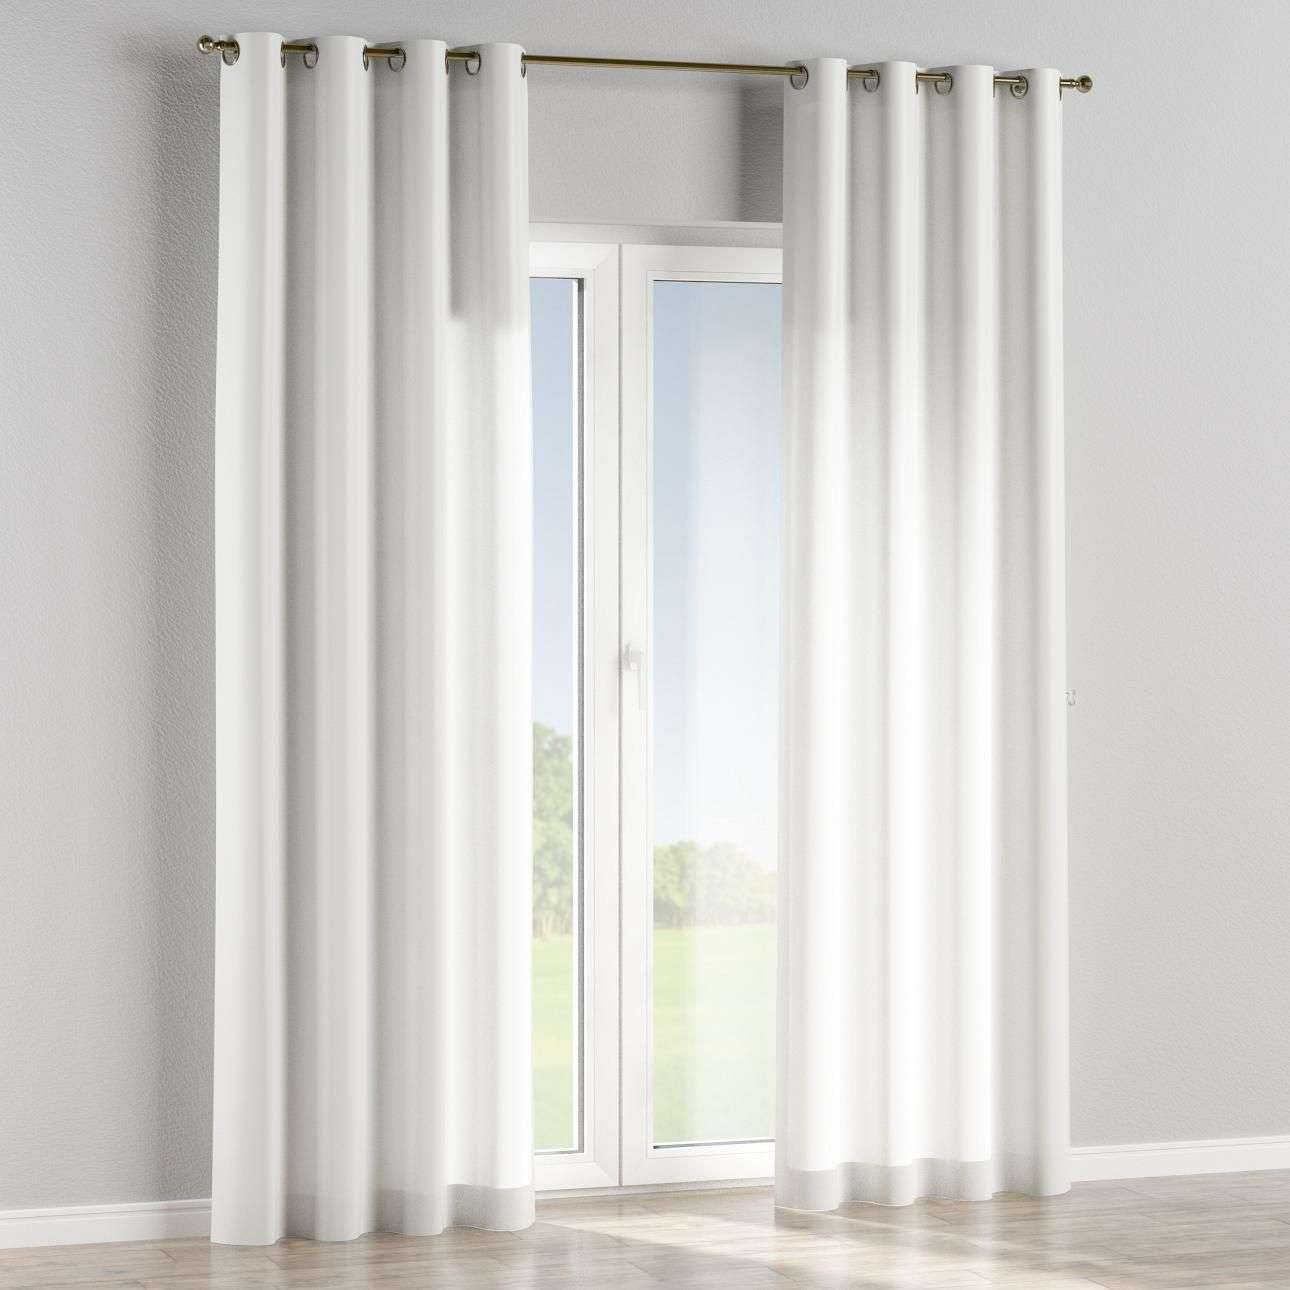 Eyelet lined curtains in collection SALE, fabric: 135-04